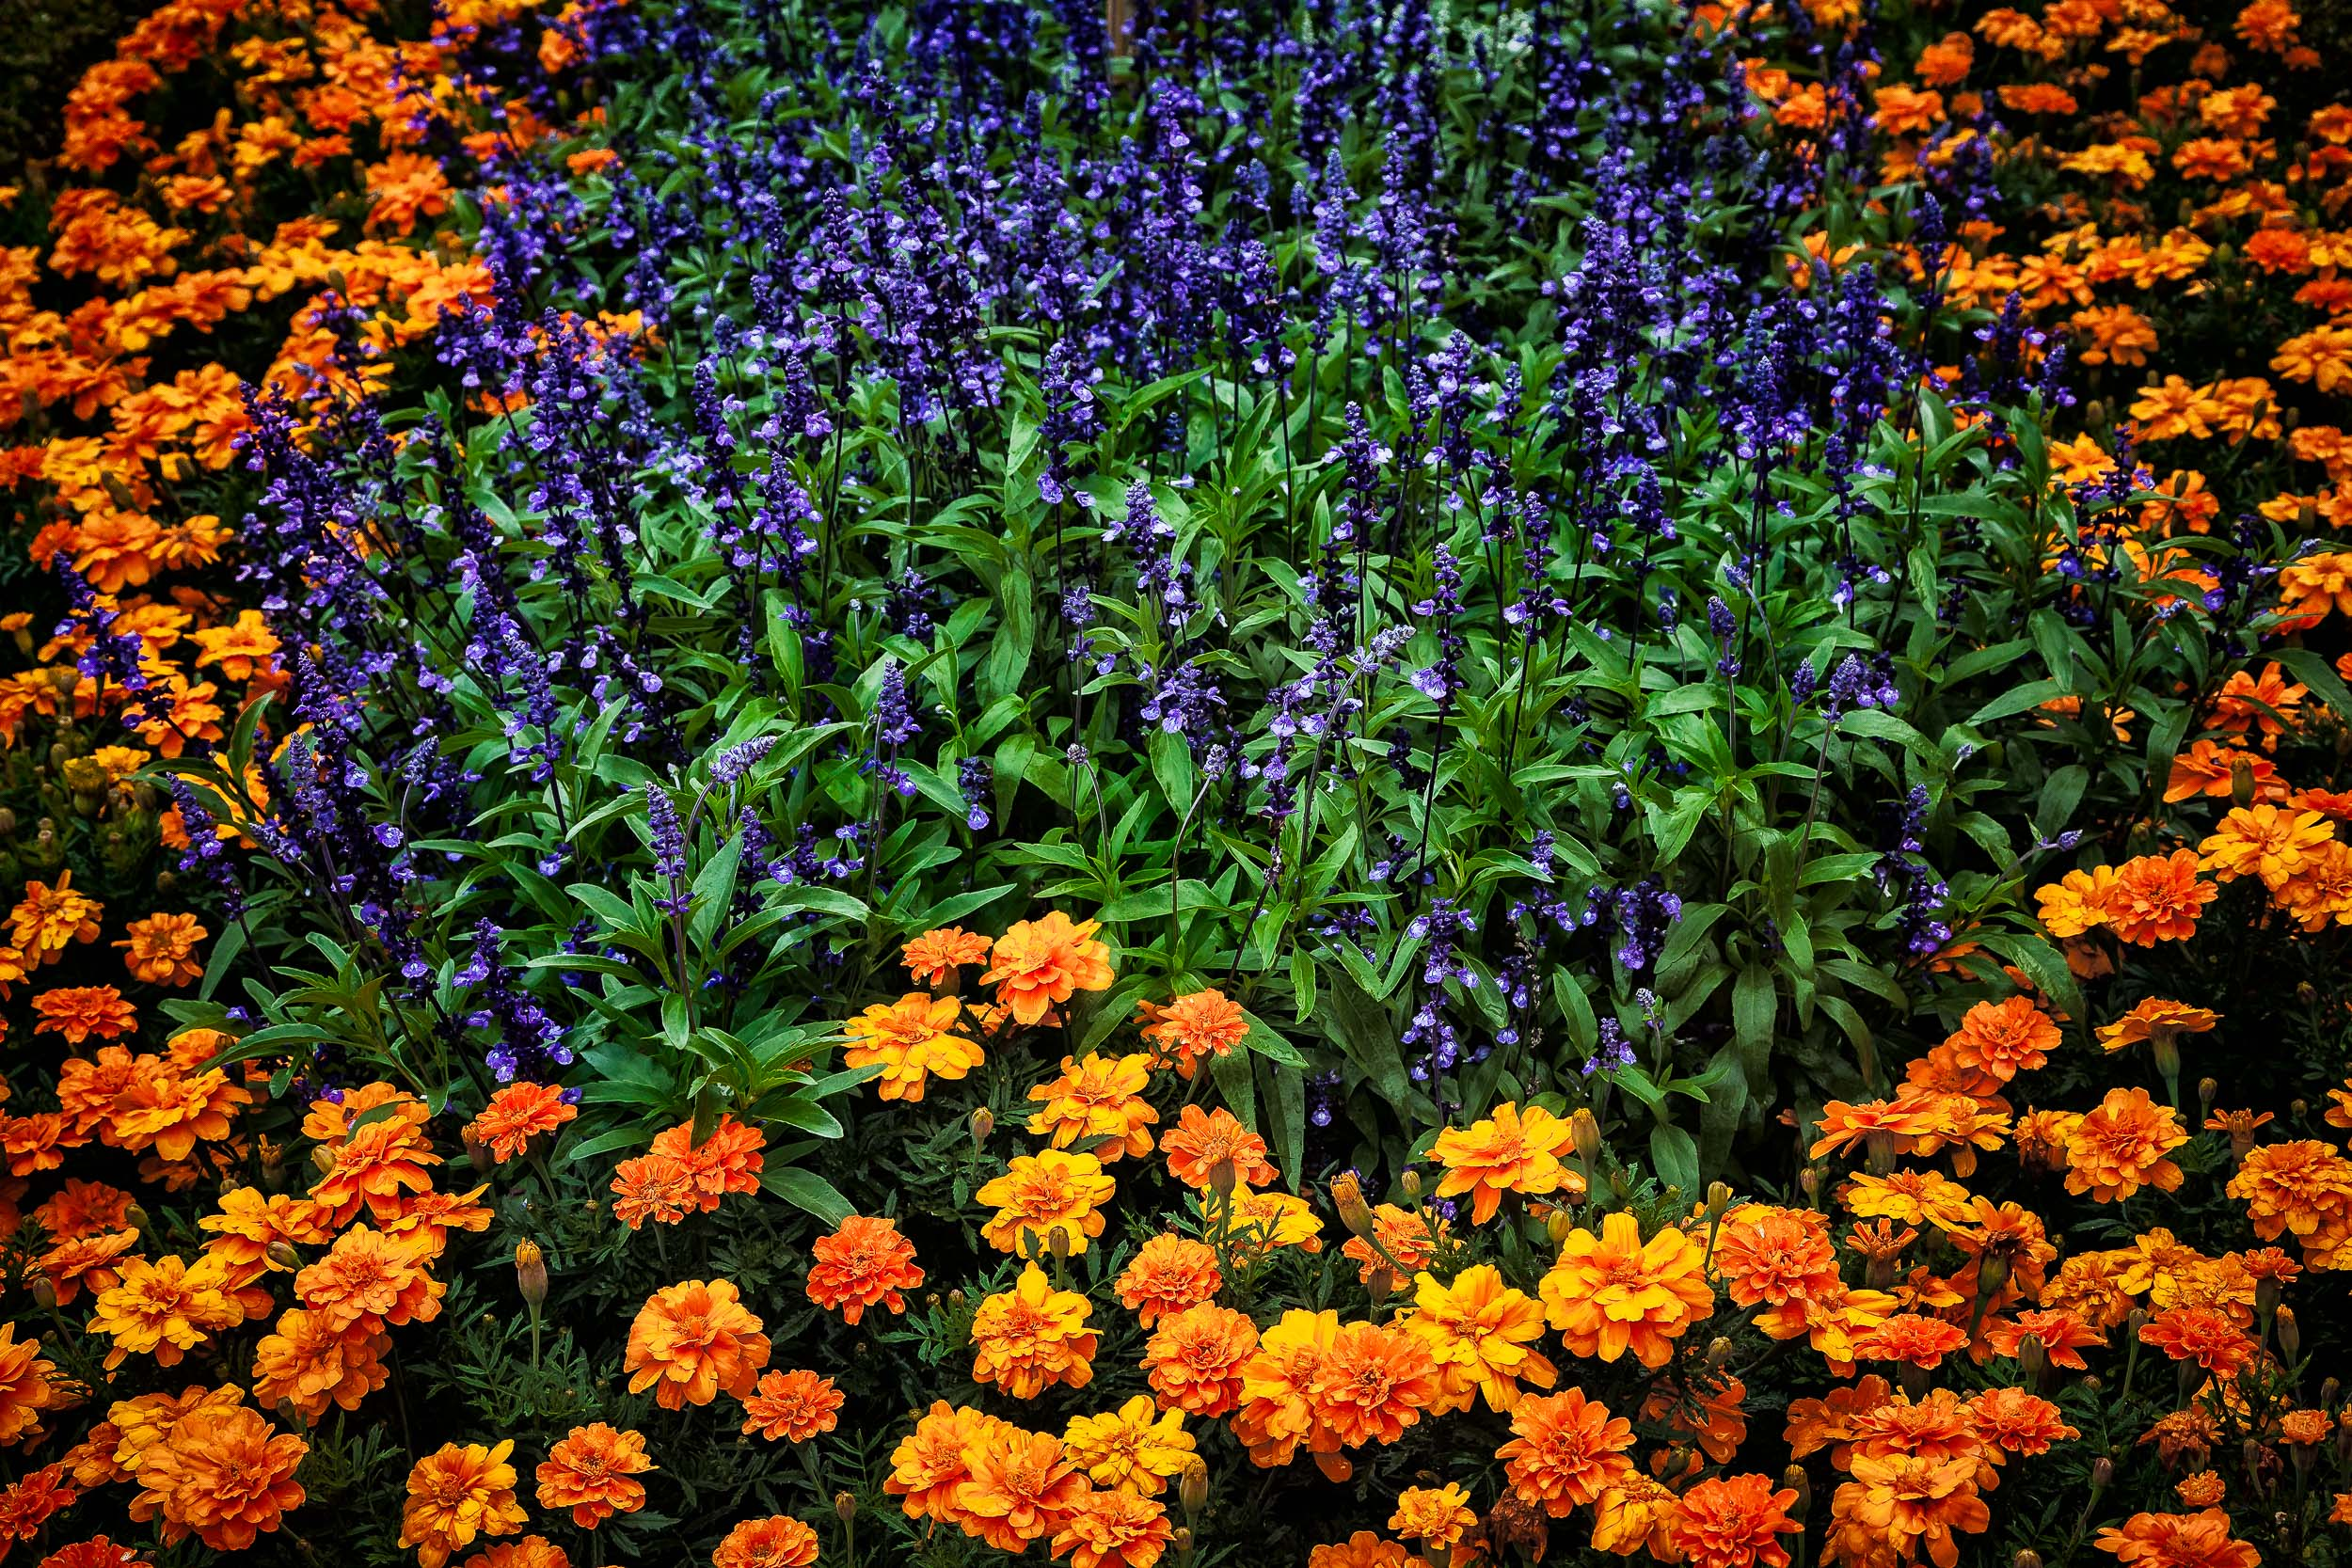 A ring of  orange flowers  surround a stand of  purple and green  in a flower bed in  Salzburg, Austria .